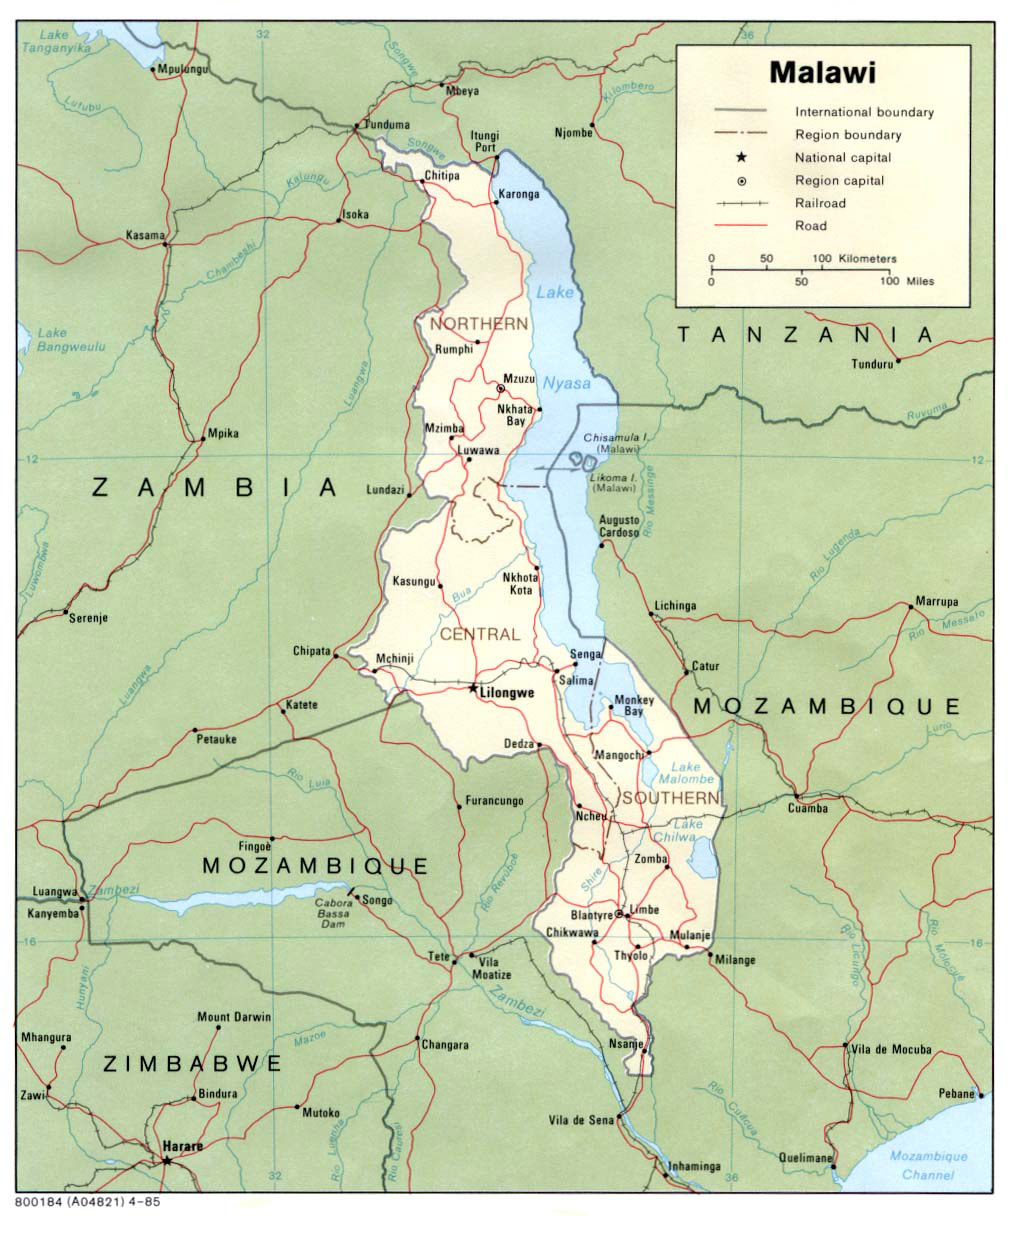 Malawi Map Political large map